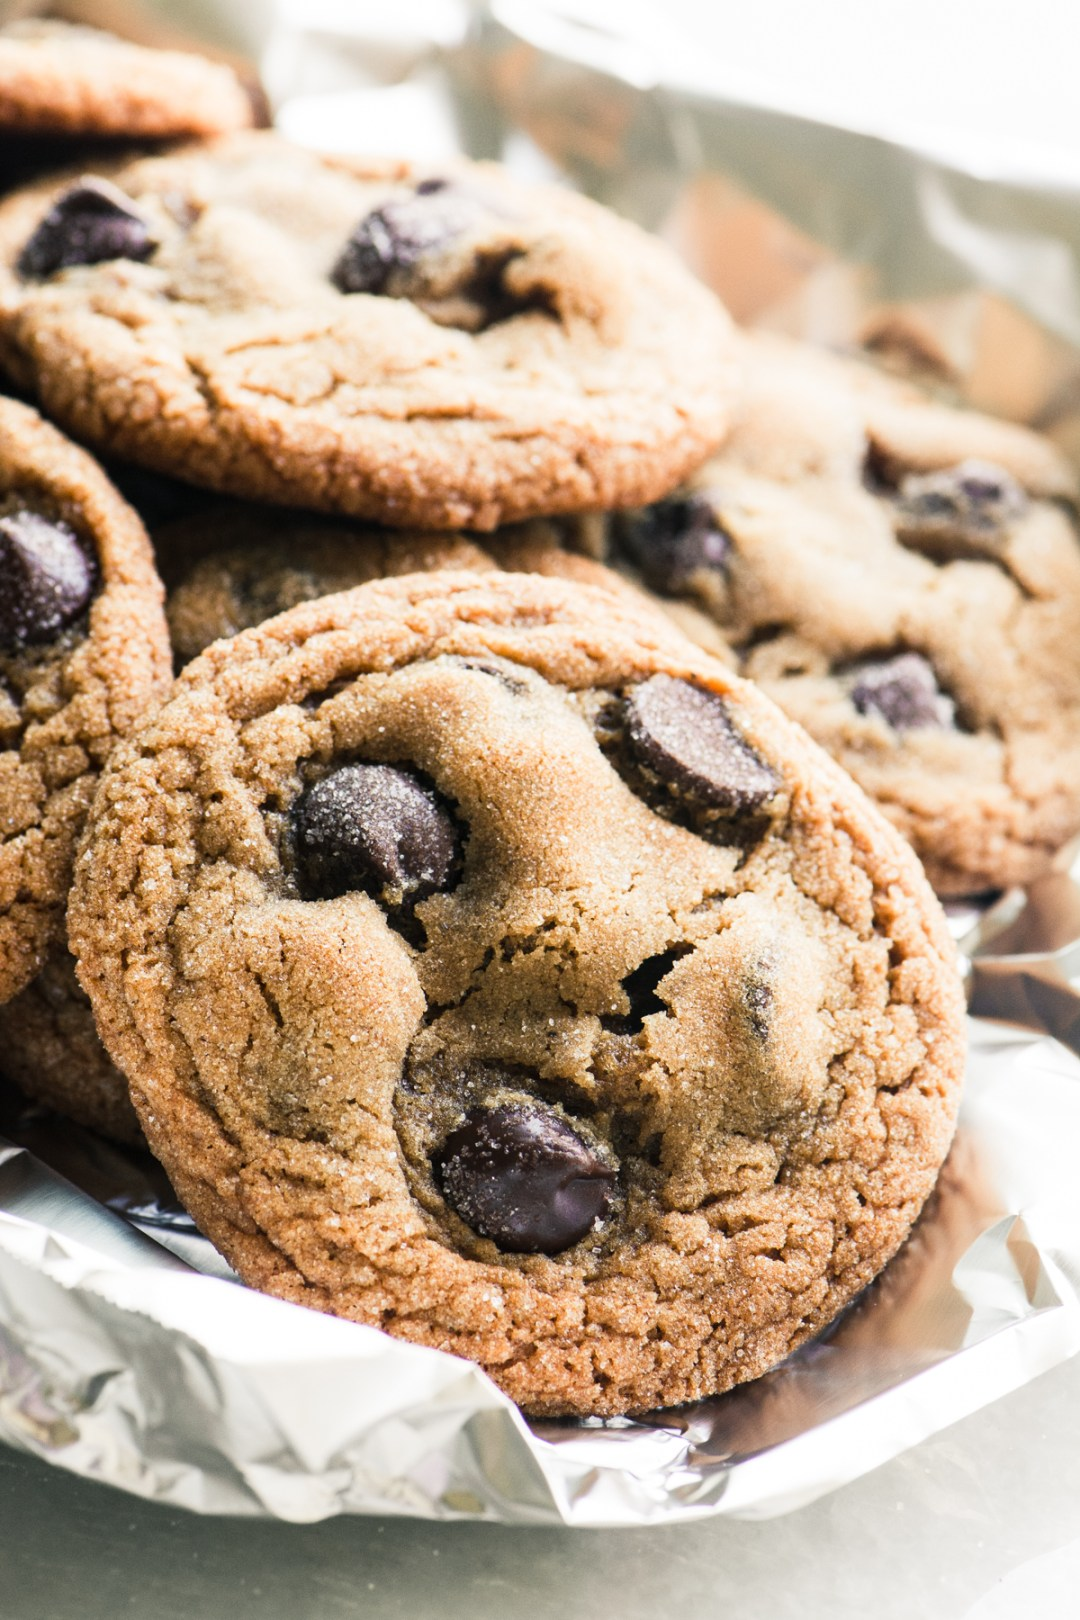 chewy chocolate chip cookies wrapped in foil